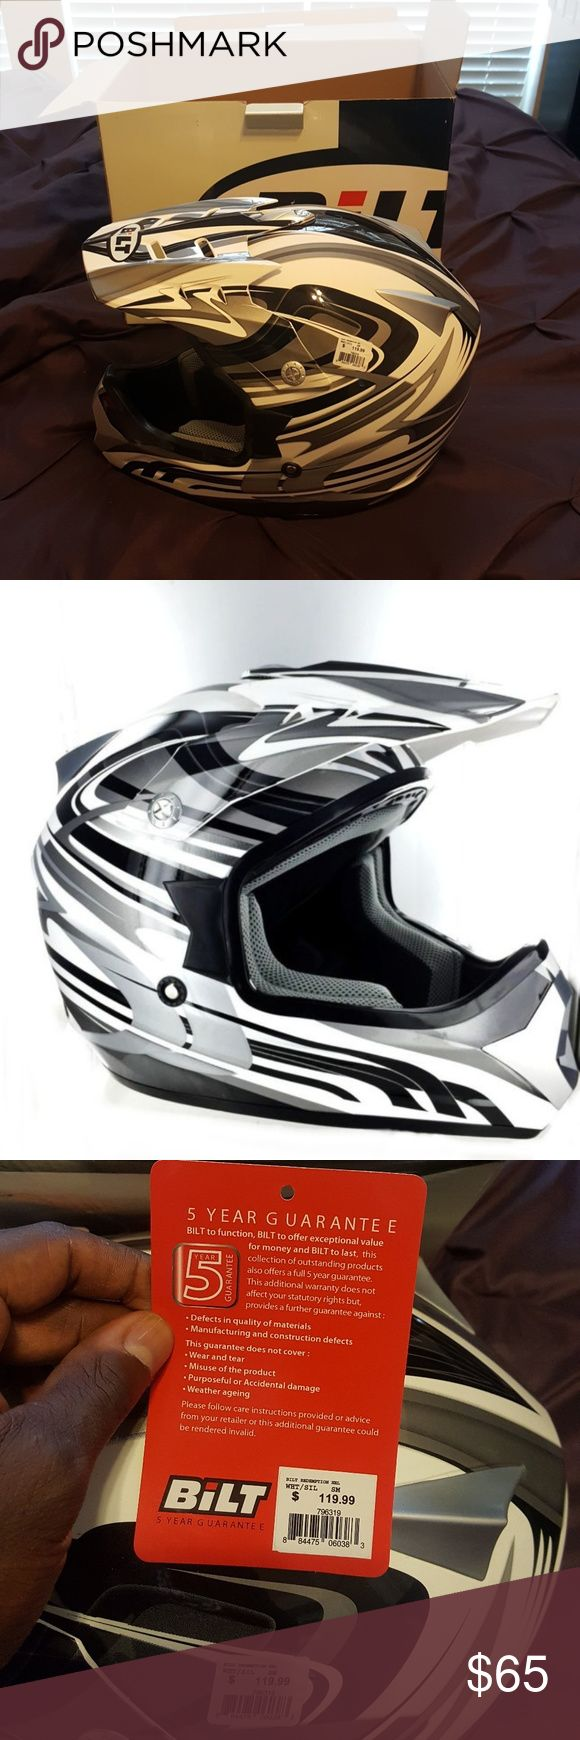 BILT REDEMPTION YOUTH HELMET Hi-tech injection molded polycarbonate shell  Quality painted shell with ultra-fine decal graphics with double lacquer finish  Full-face shell  Double D-ring safety fastening  Chin-bar airflow vent  Removable injection-molded visor with graphicd  Removable air-flow comfort padded lining  Meets or exceeds DOT specifications Bilt Other